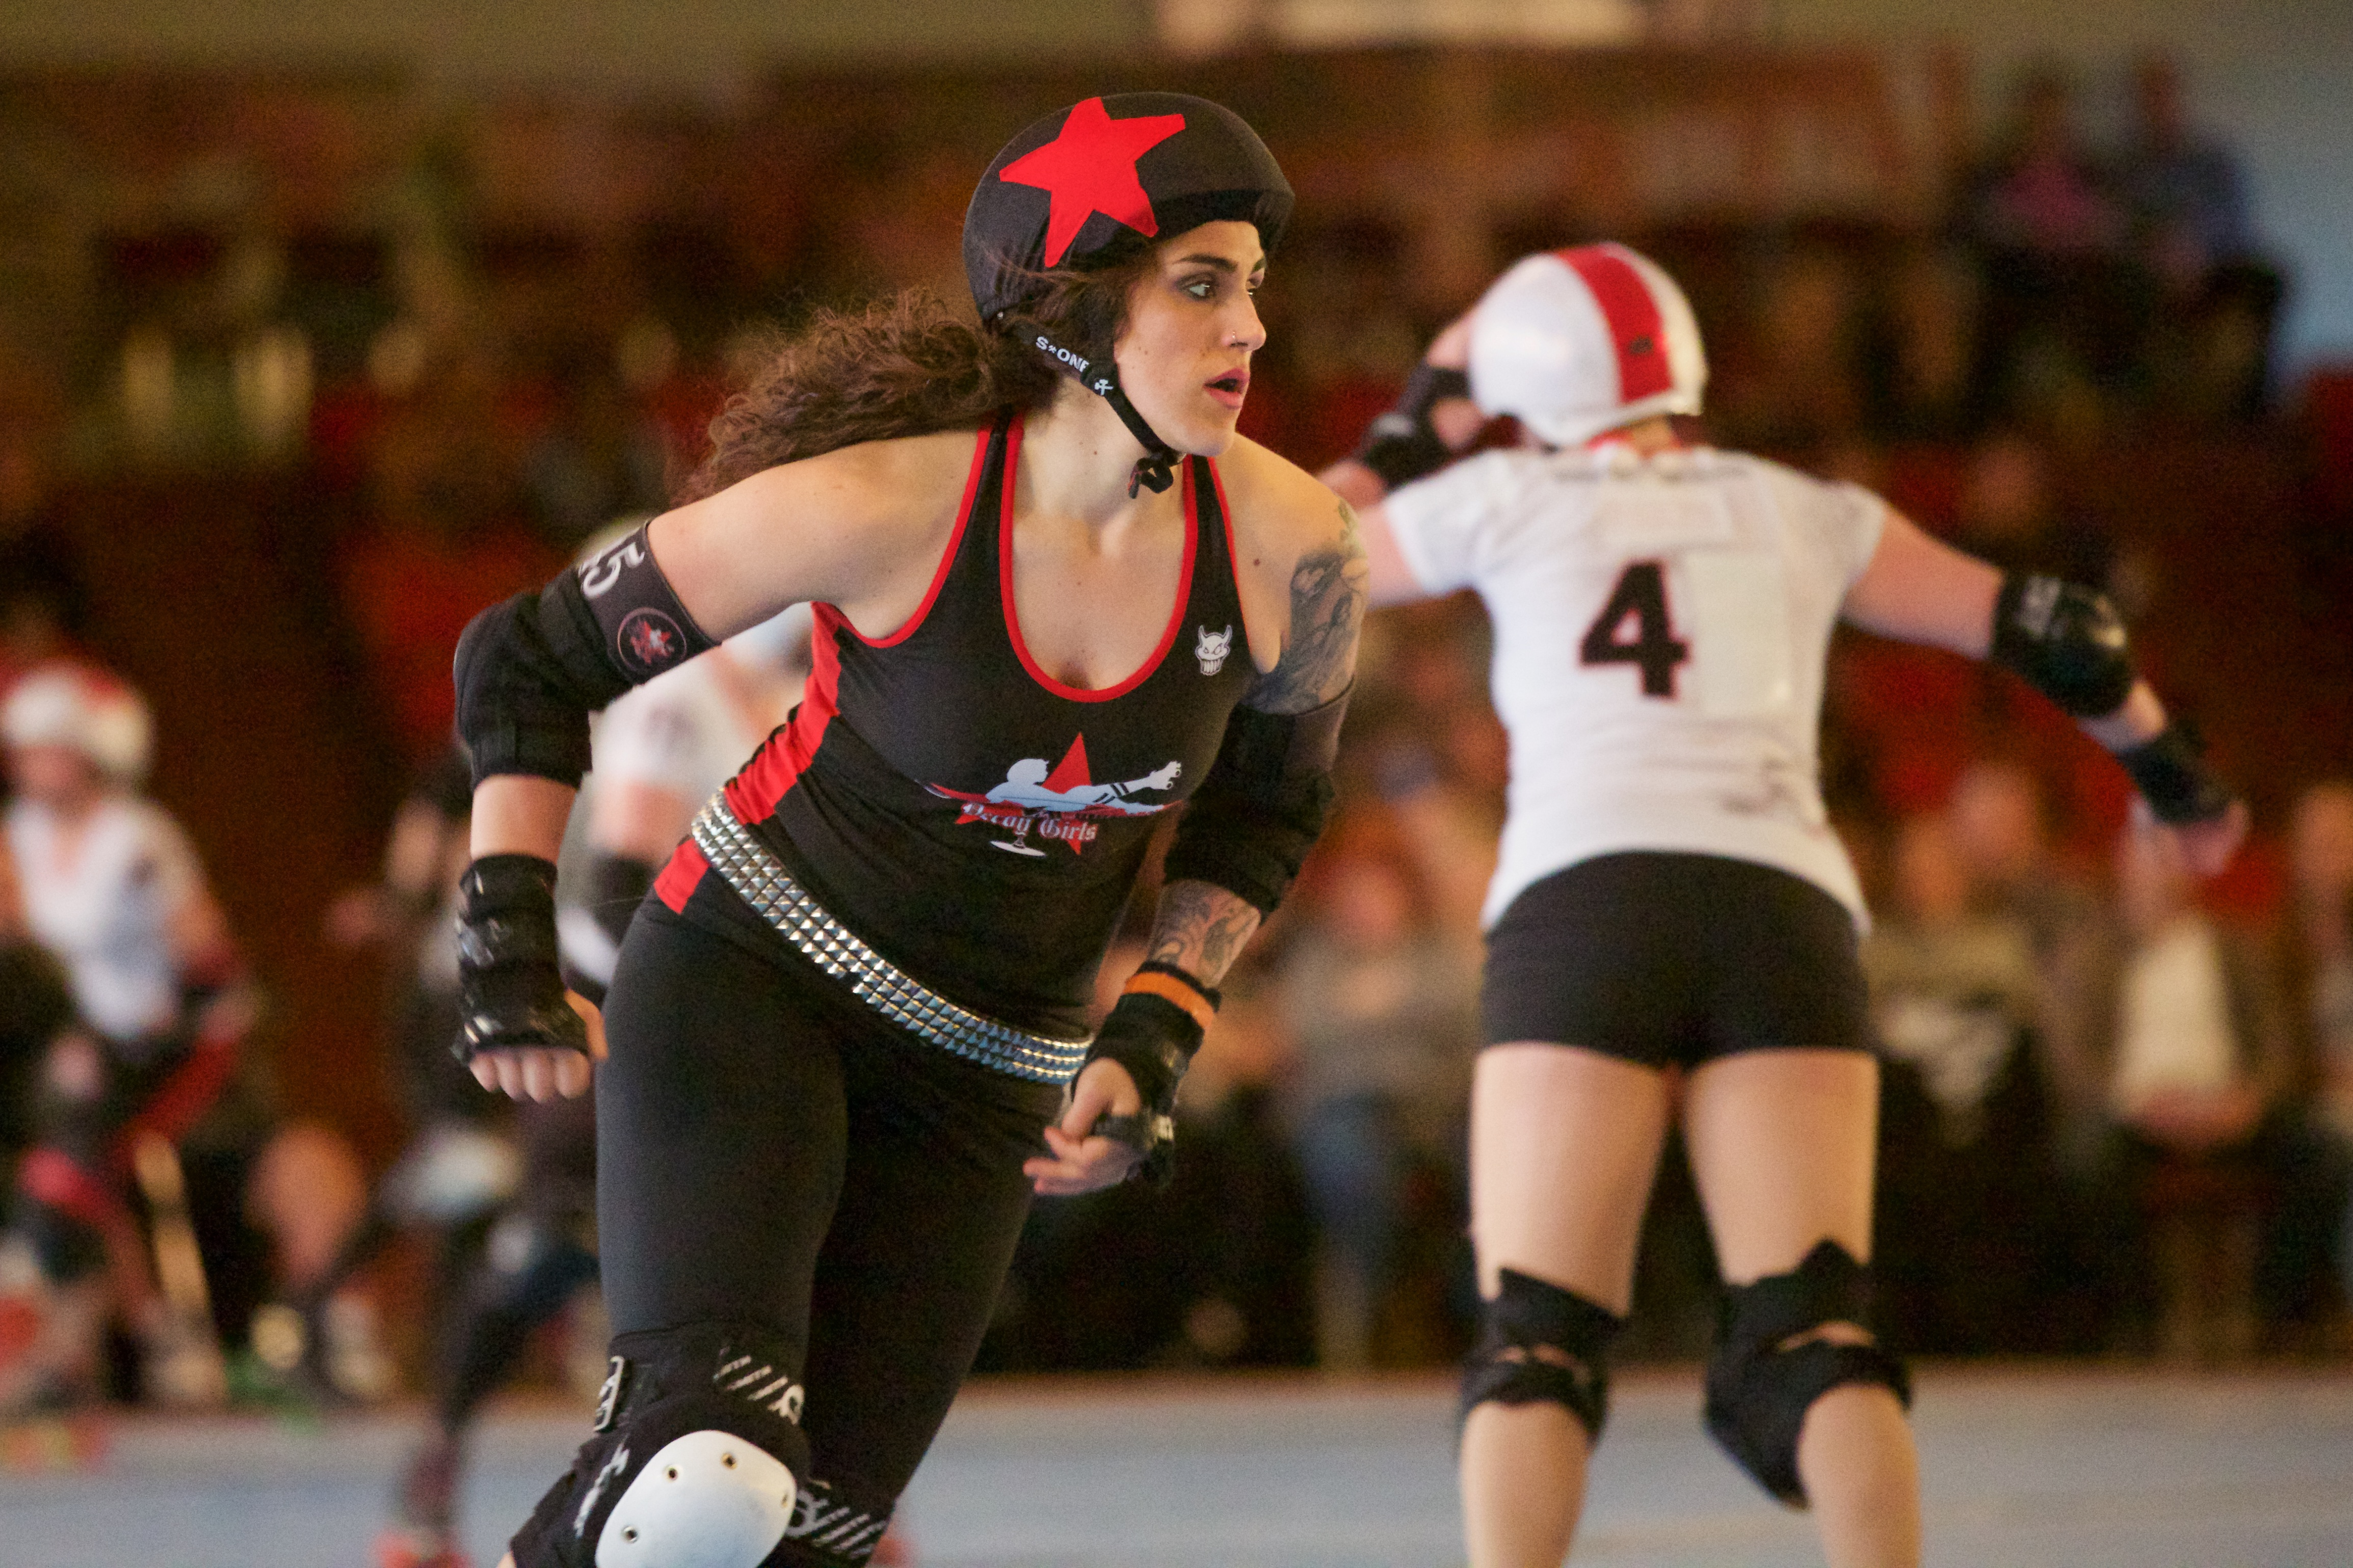 Feta Sleeze Roller Derby